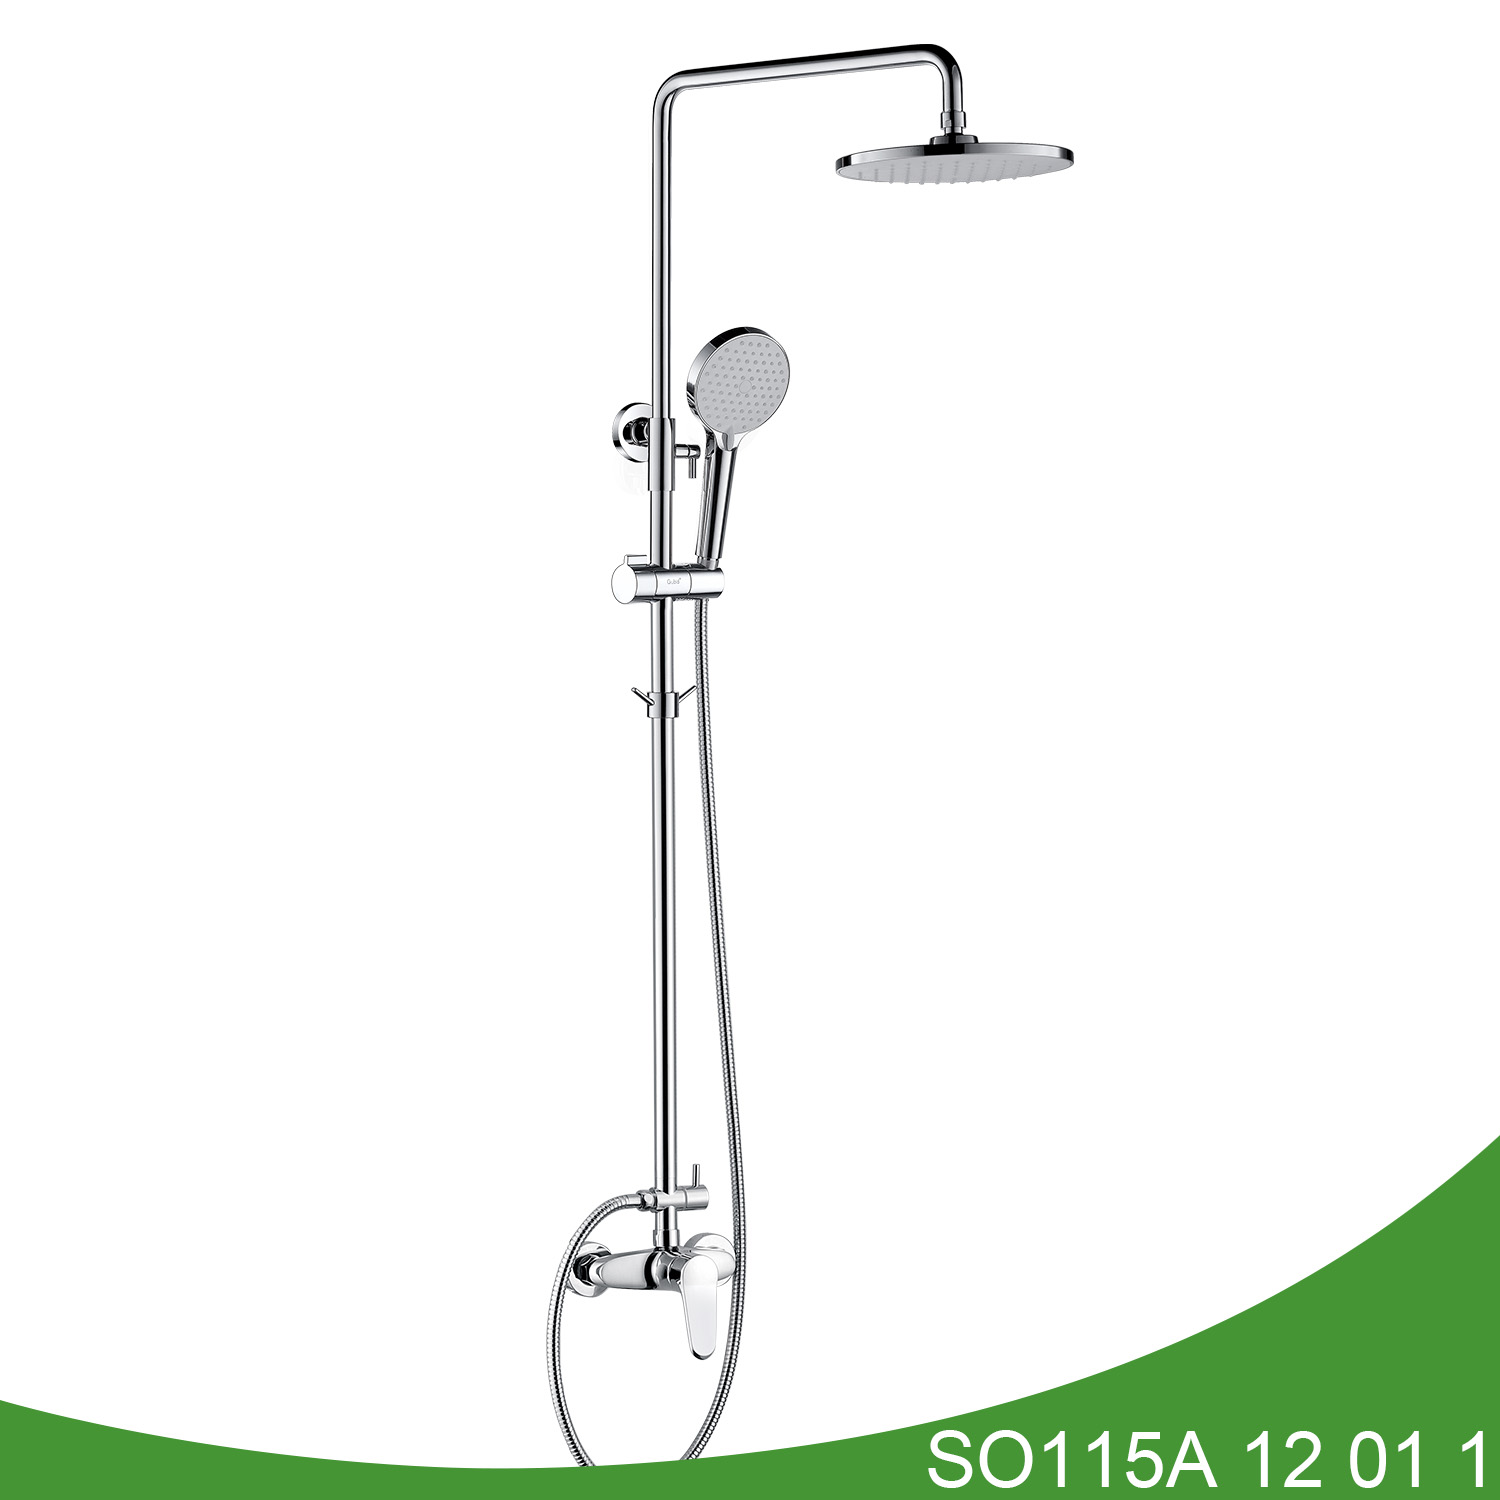 Exposed shower set SO115A 12 01 1